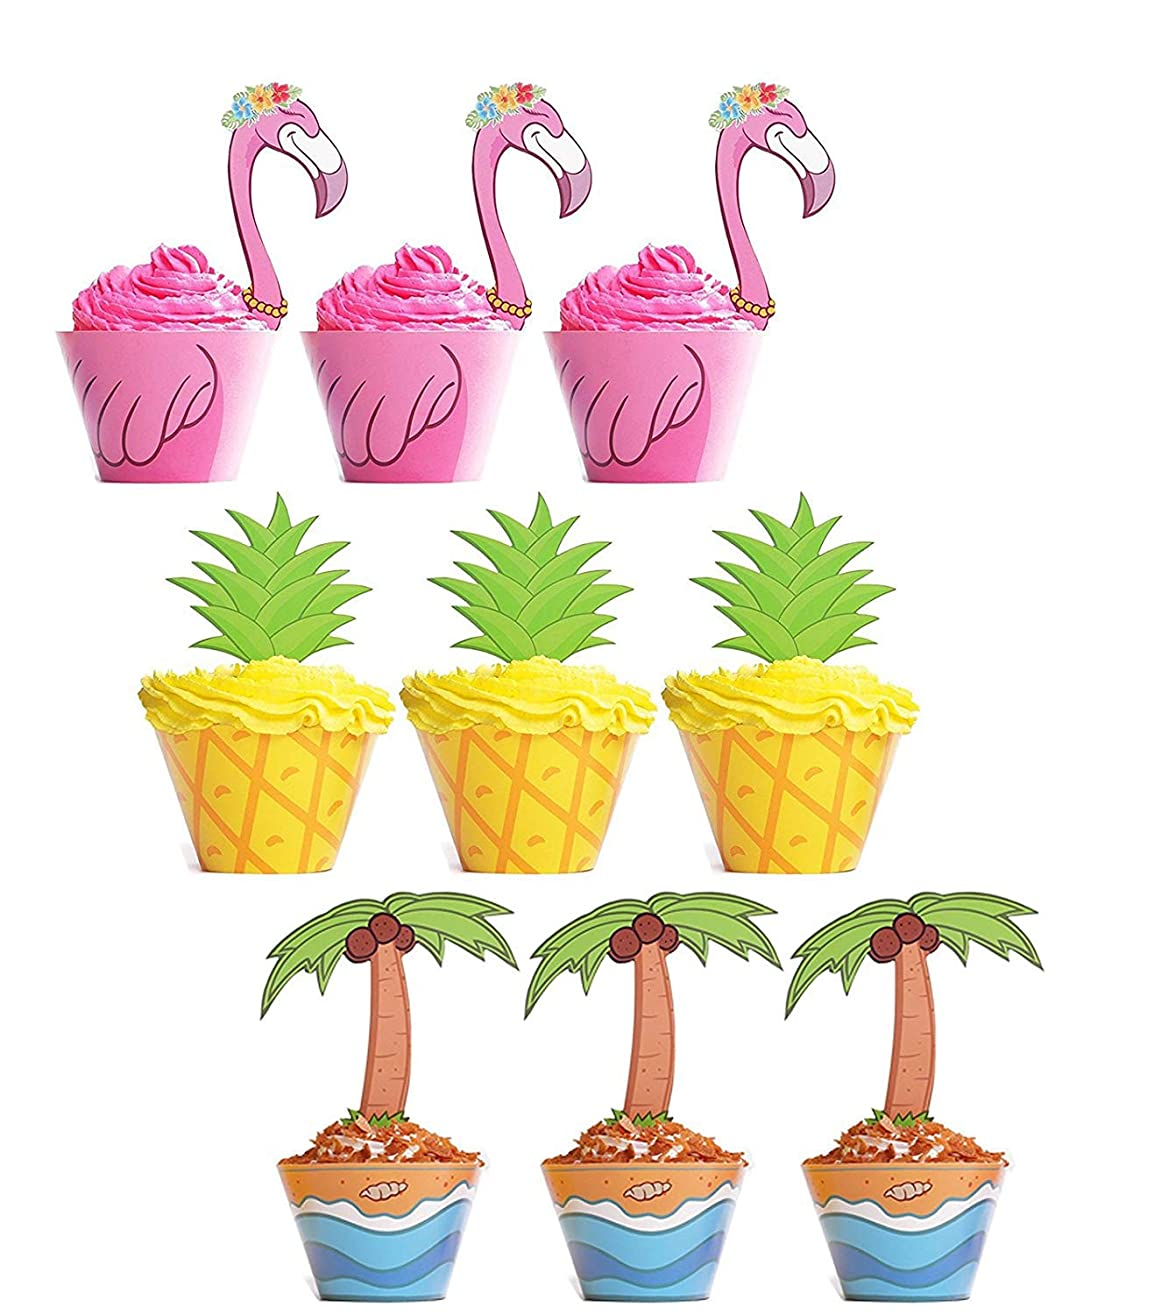 45 PCS Flamingo/Pineapple/Palm Cupcake Toppers Wrappers - Luau Tropical Hawaiian Pool Party Supplies Cake Decorations